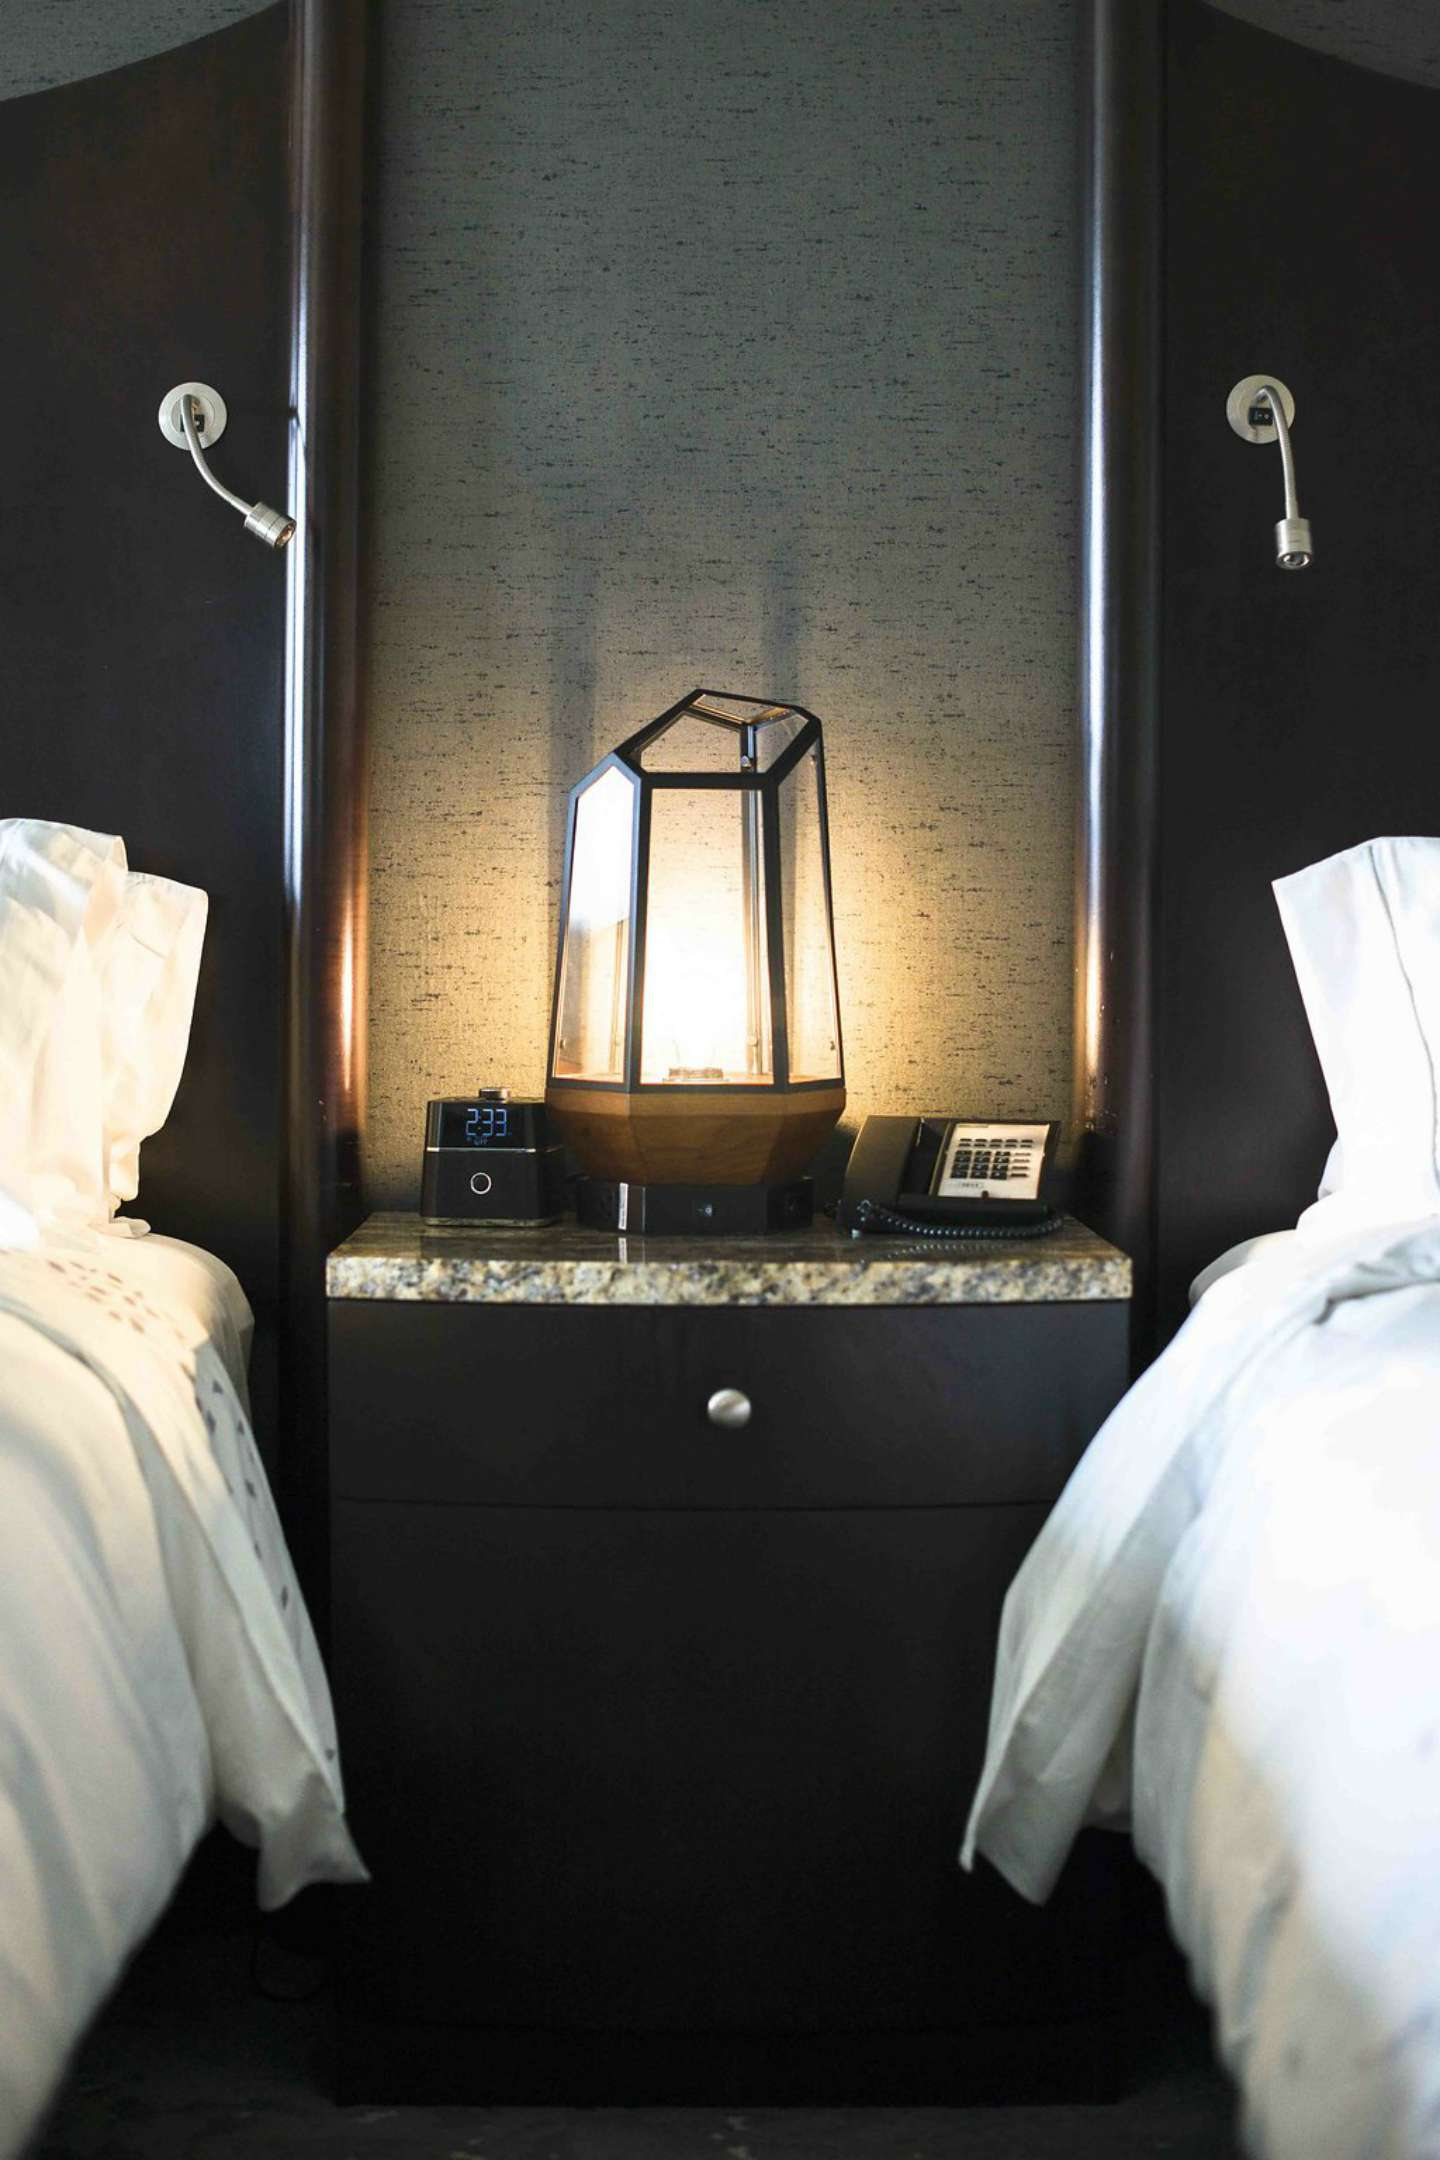 Renaissance Raleigh North Hills Hotel - I'm Fixin' To - @mbg0112